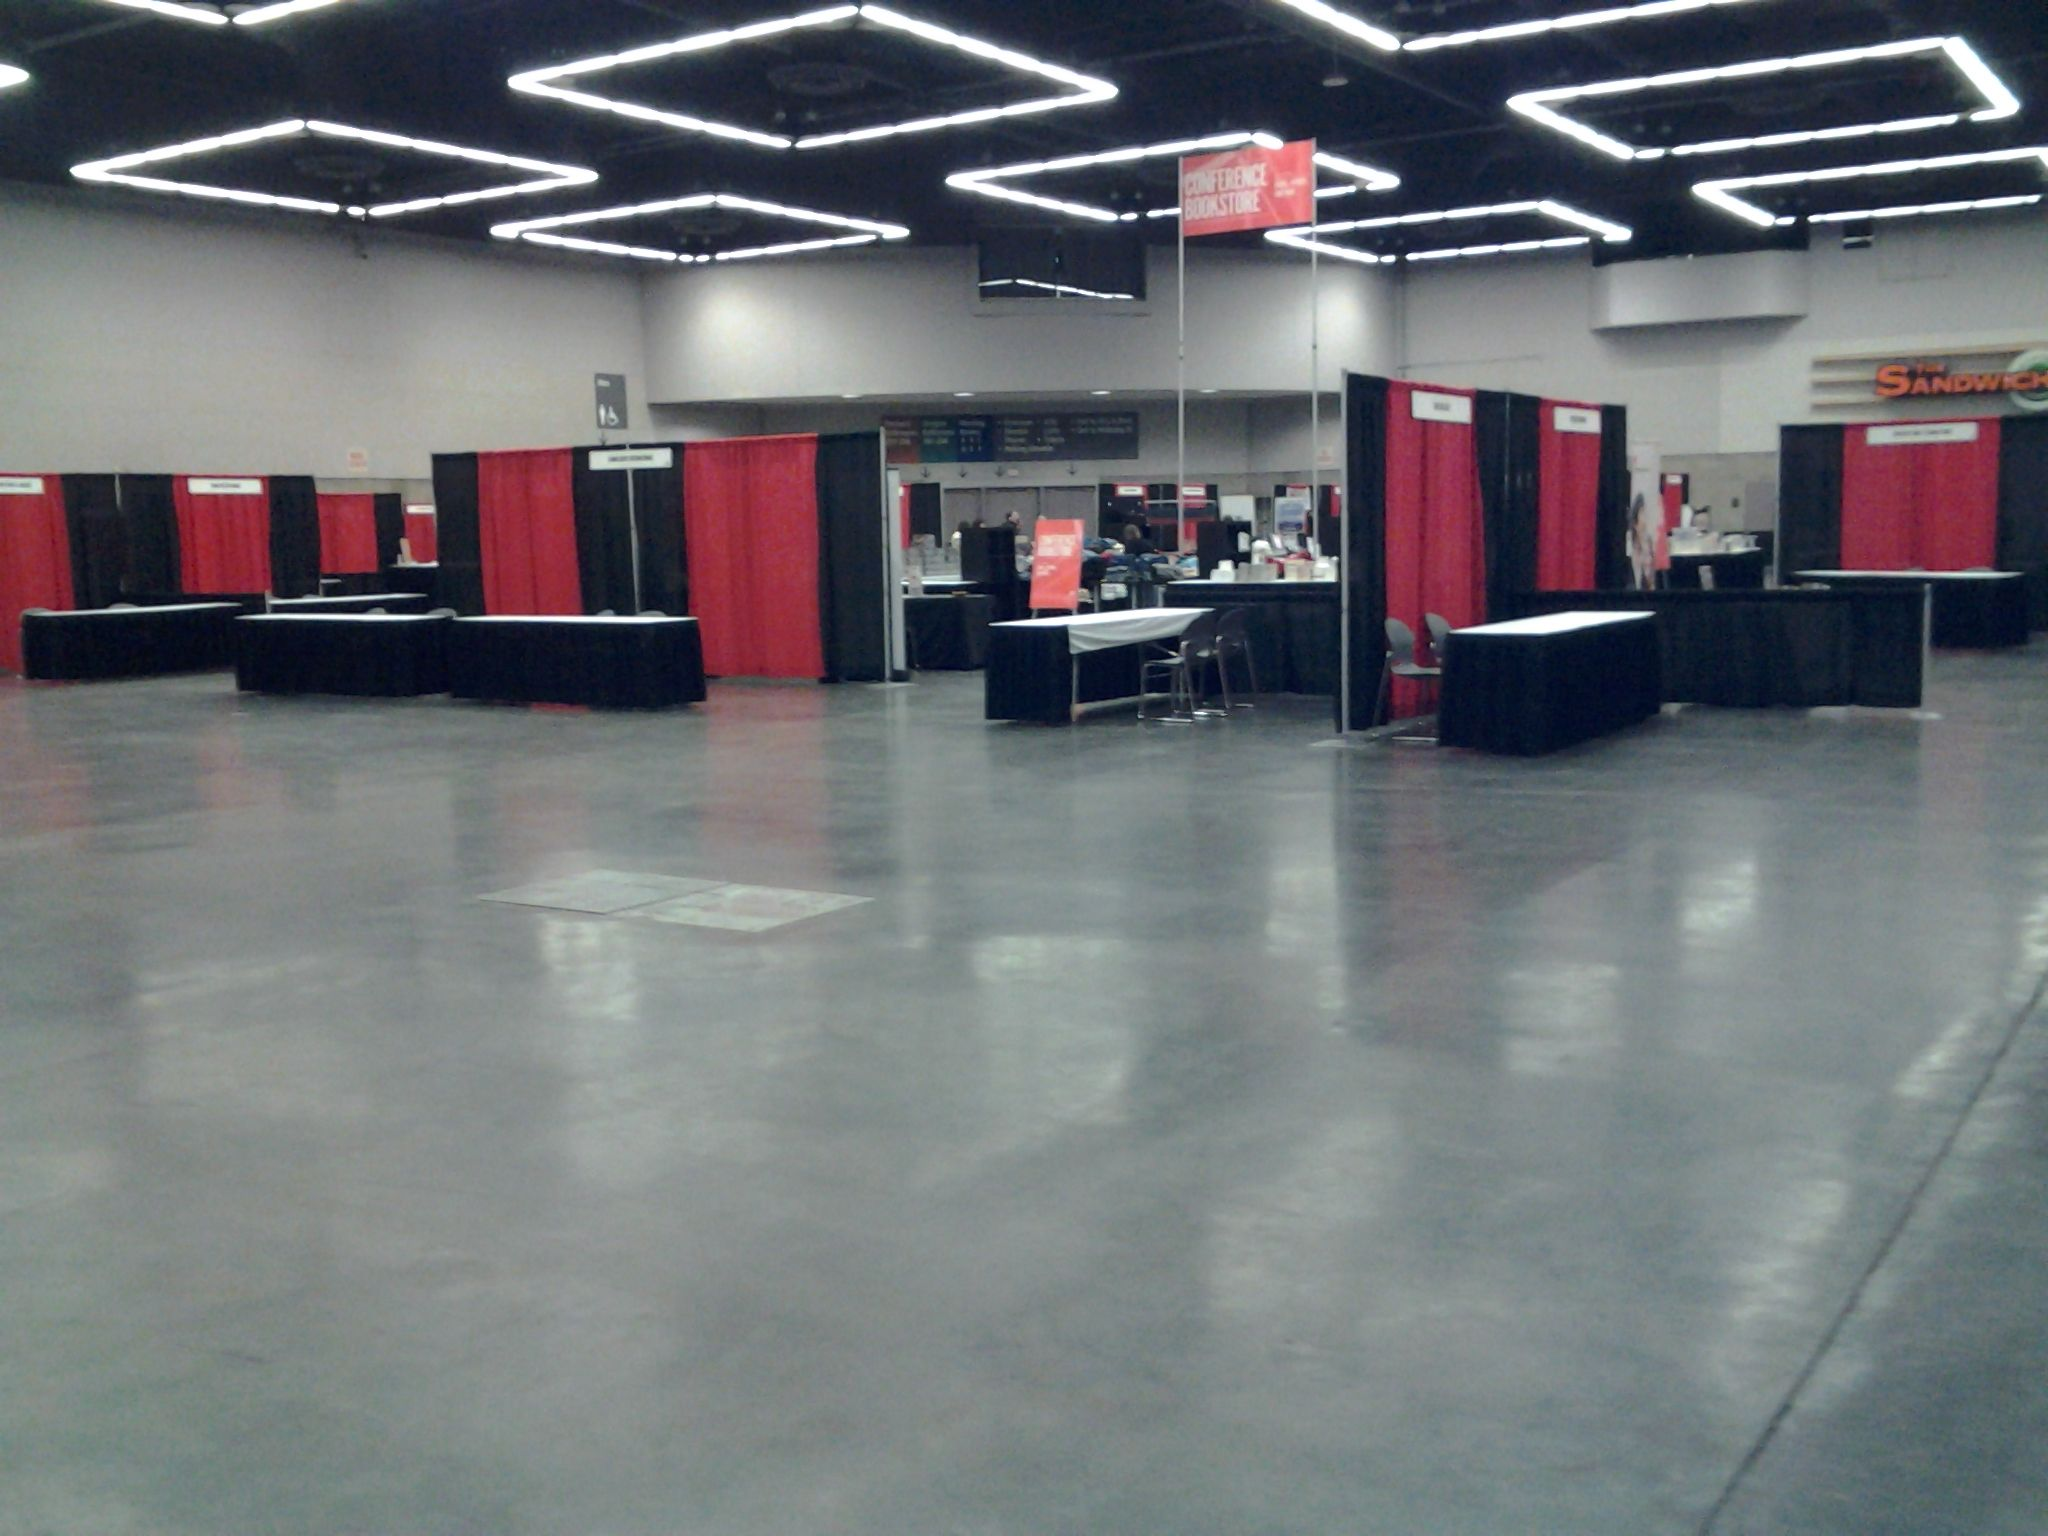 The Oregon Convention Center exhibit hall during set up for The Justice Conference 2012